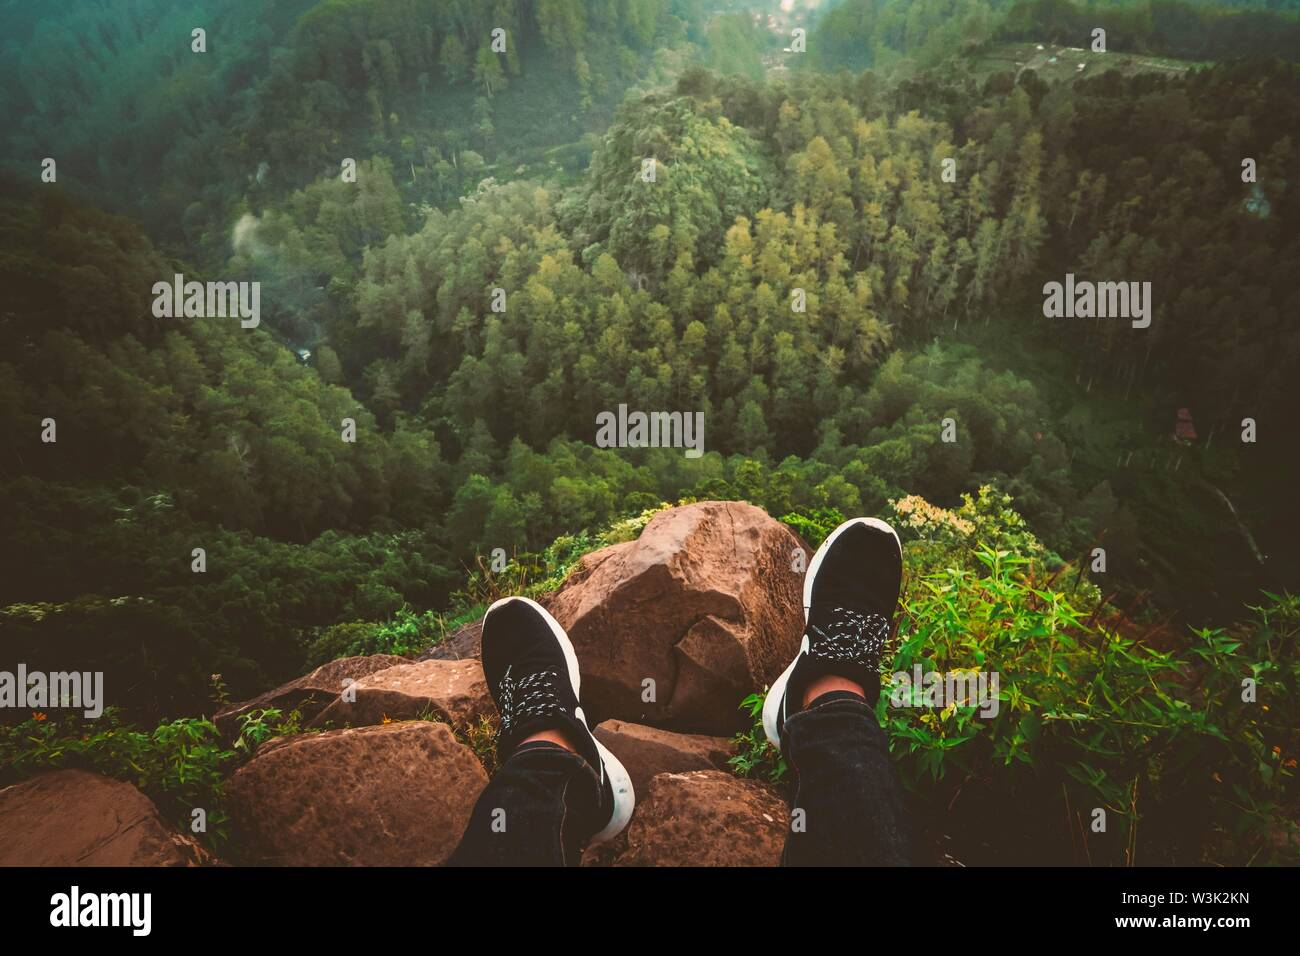 A person's feet in sneakers sitting on a rocky cliff edge looking at a beautiful forest and hills - Stock Image